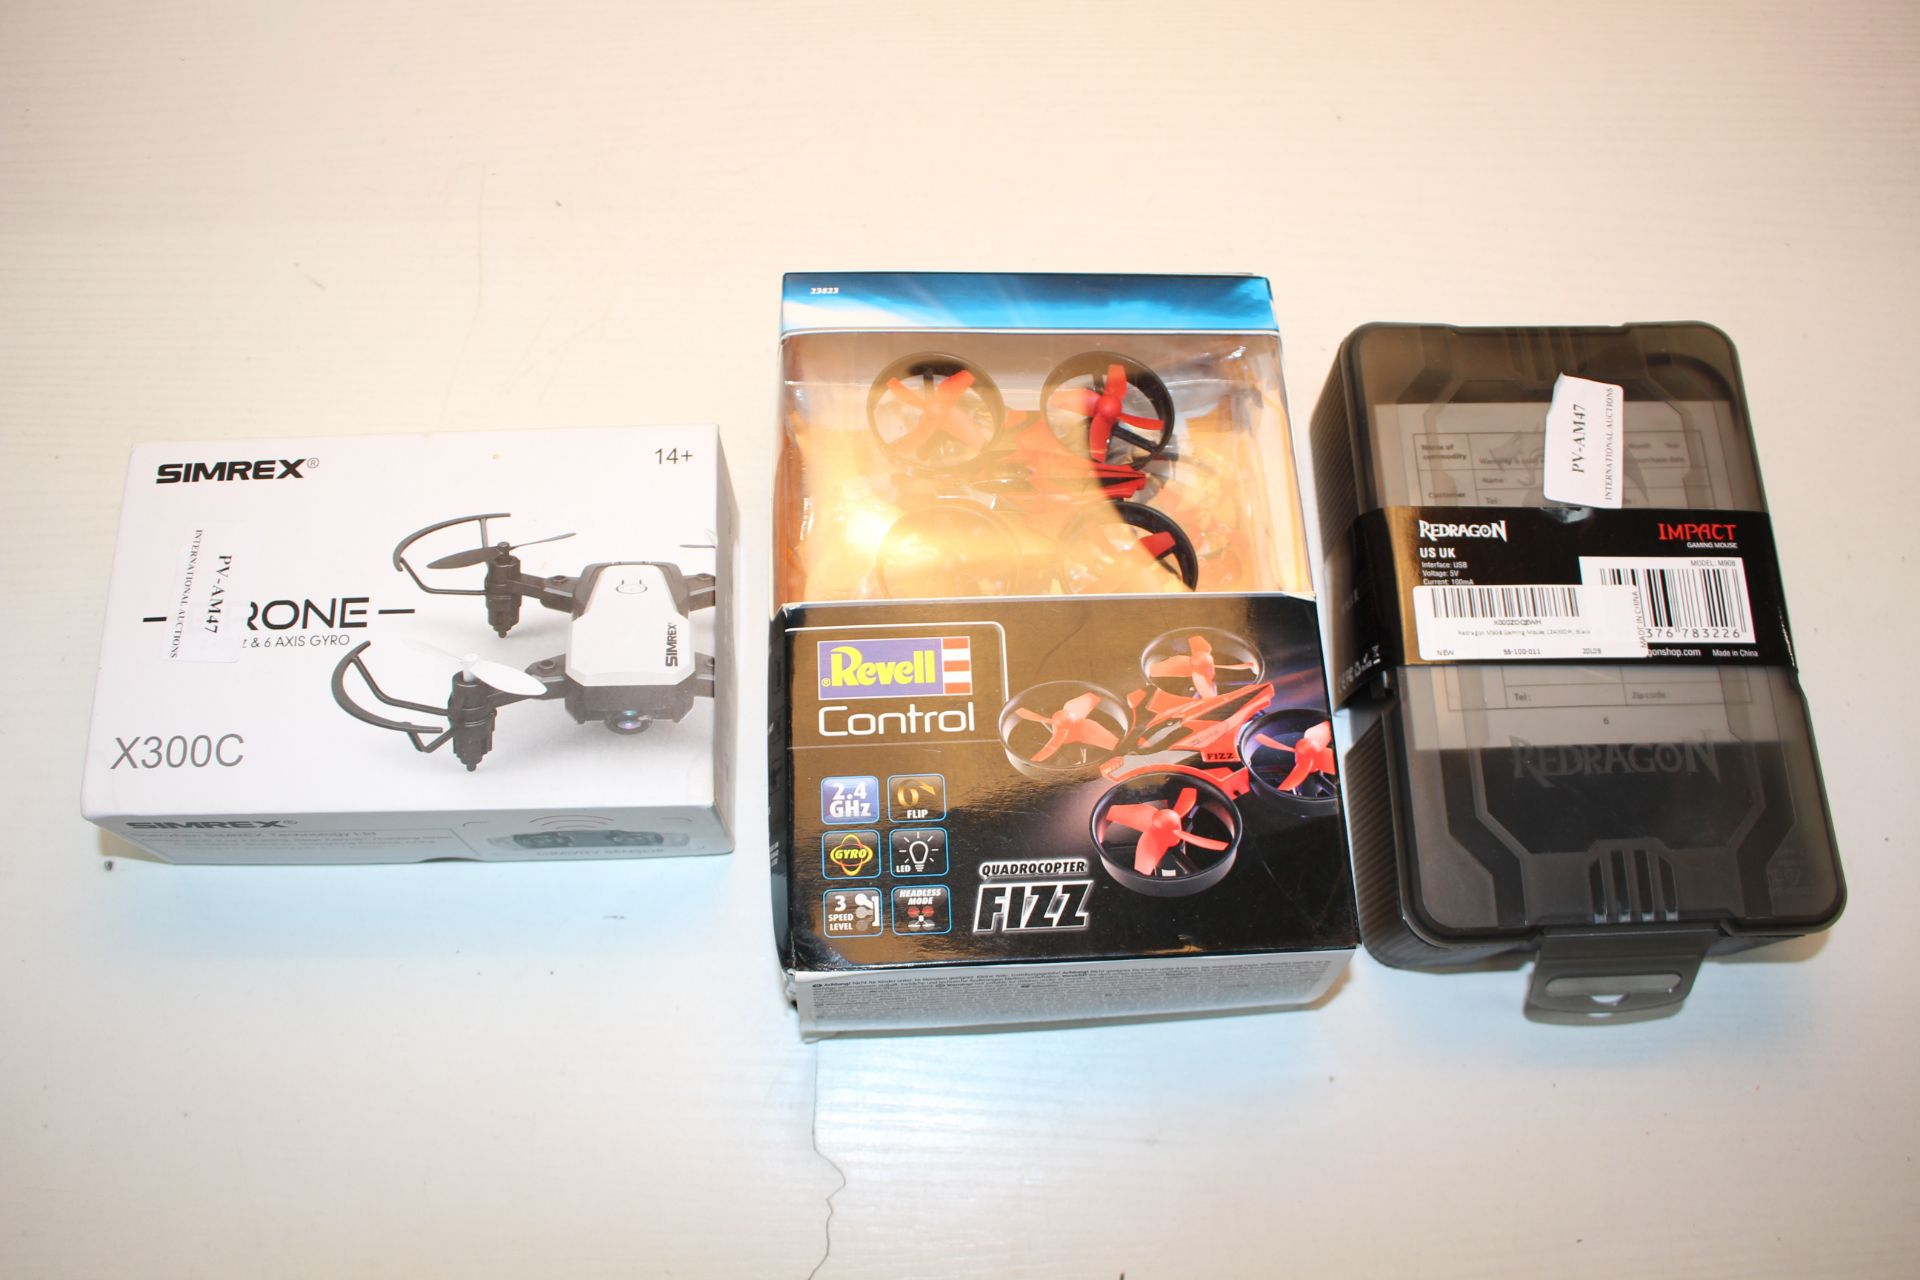 3X ASSORTED BOXED ITEMS TO INCLUDE SIMREX DRONE, REVELL CONTROL QUADCOPTER & REDRAGON Condition